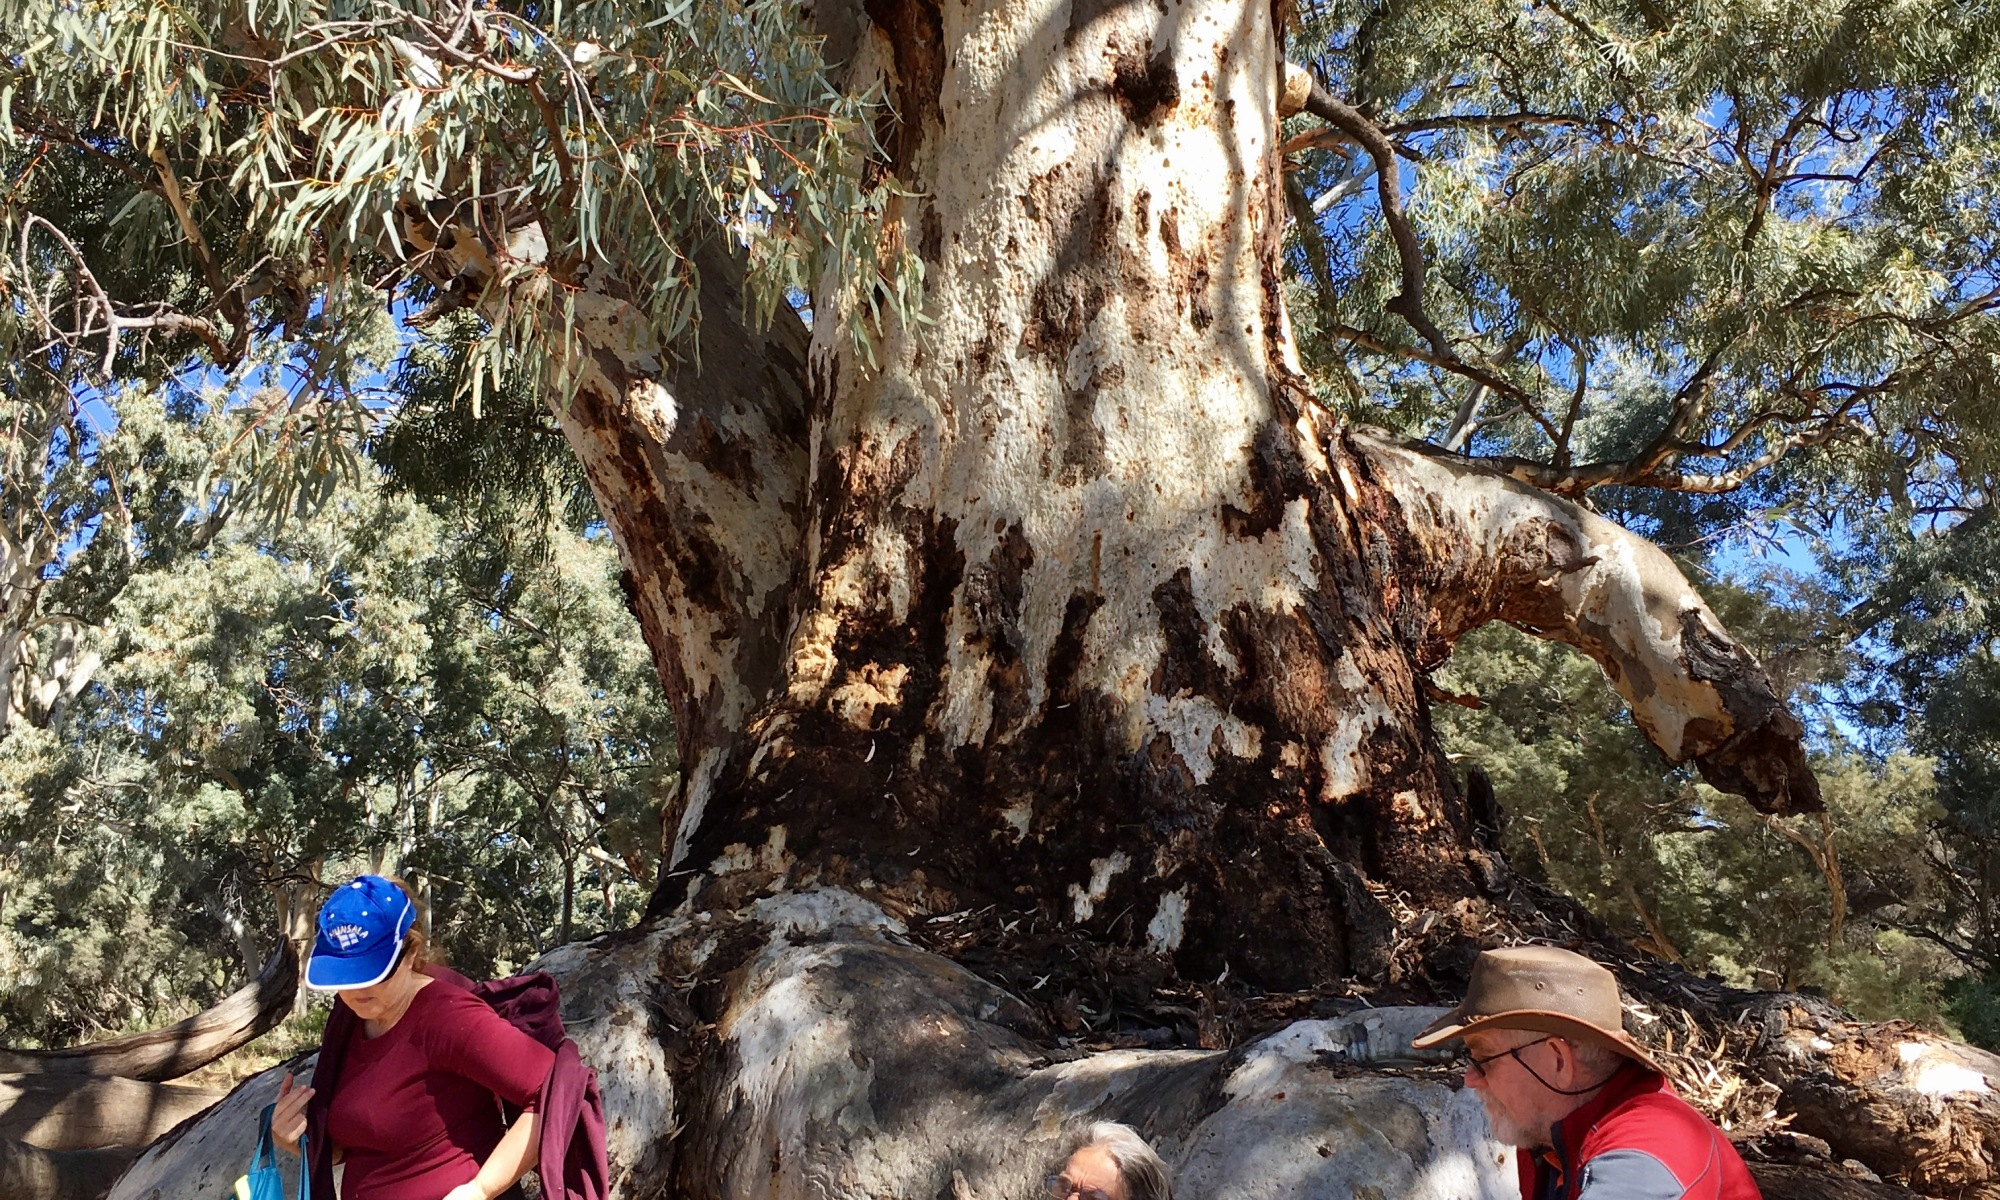 Lunch under this huge old tree